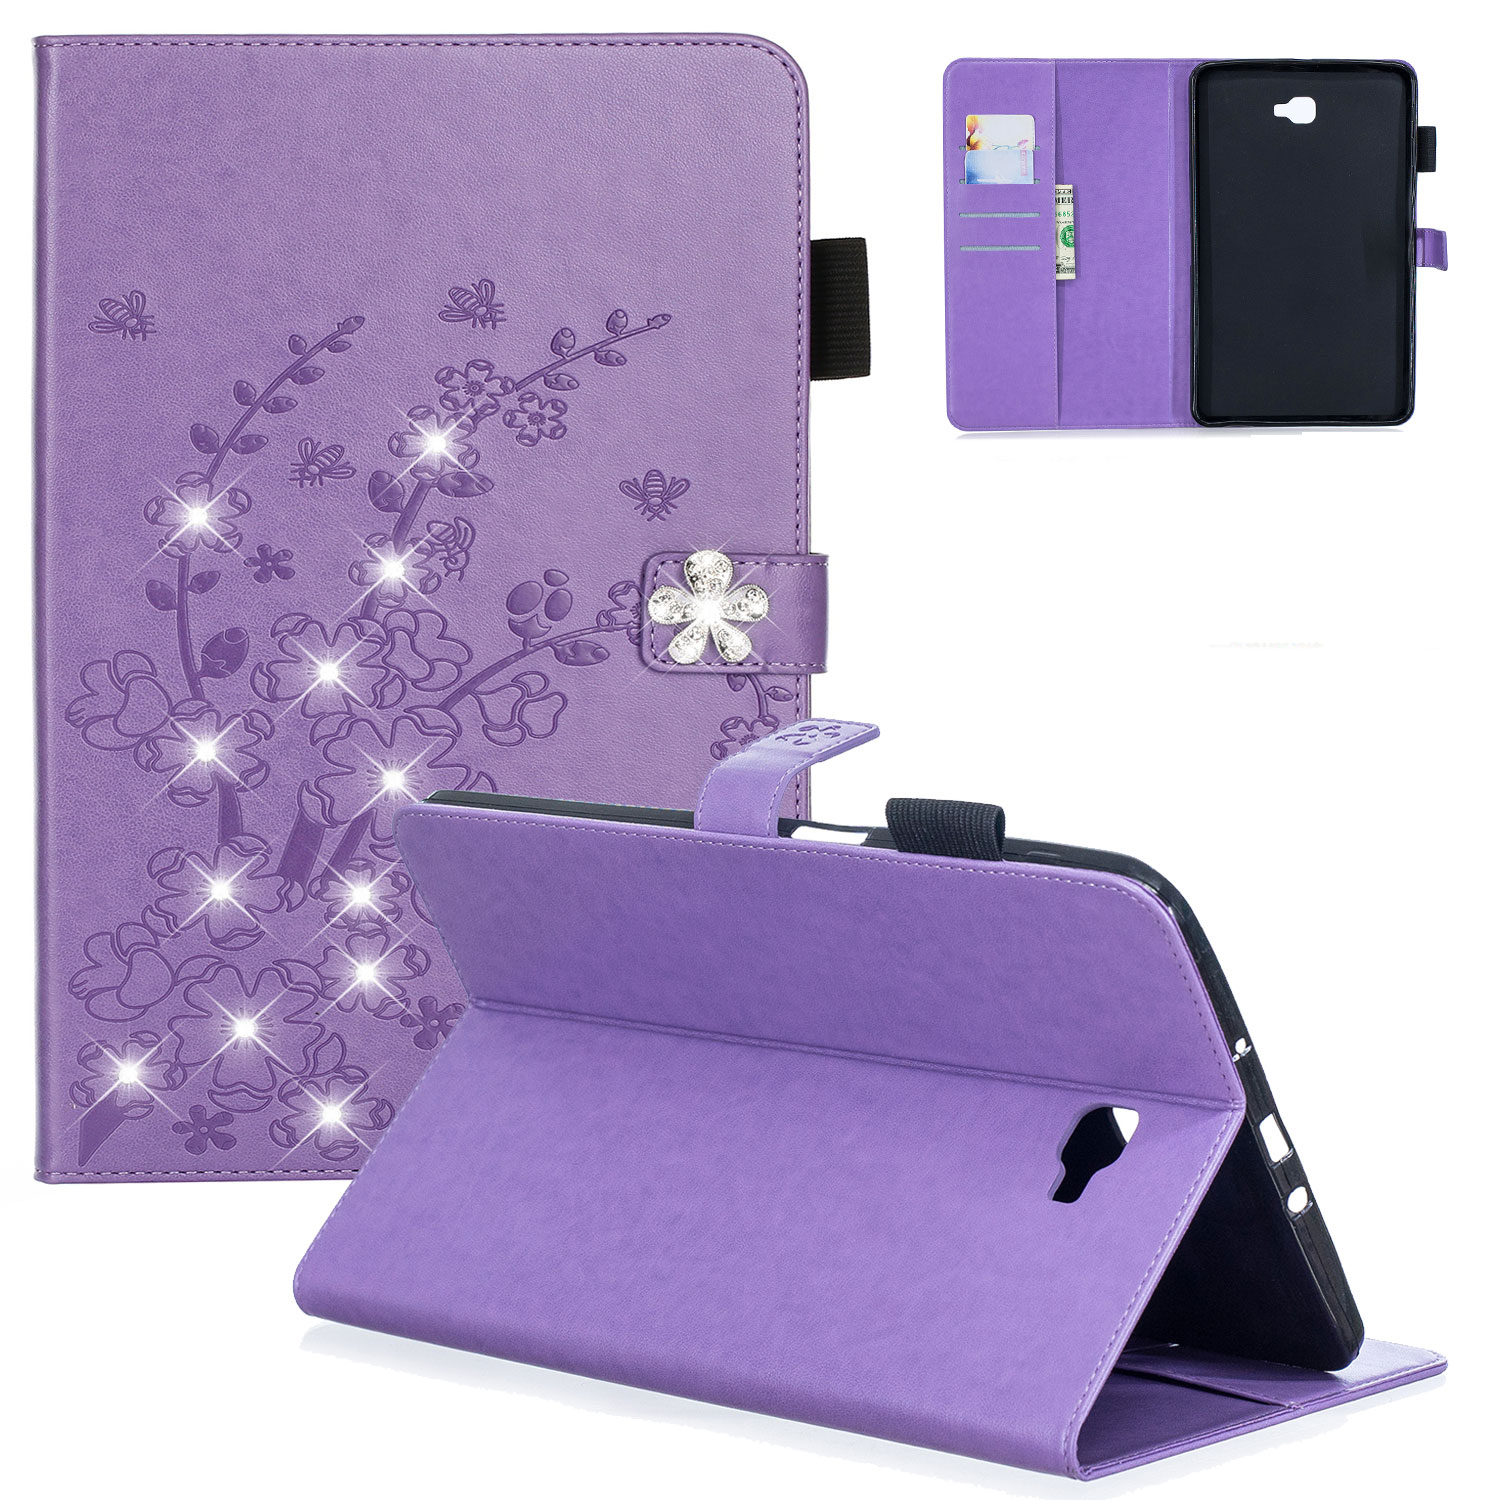 "Galaxy Tab A 10.1"" Case, Samsung Galaxy Tab A 10.1"" SM-T580 SM-T585 Cover, Allytech 3D Plum Blossom Series PU Leather Multi-Card Slots Wallet Case with Kickstand for Samsung 10.1-inch Tablet, Purple"